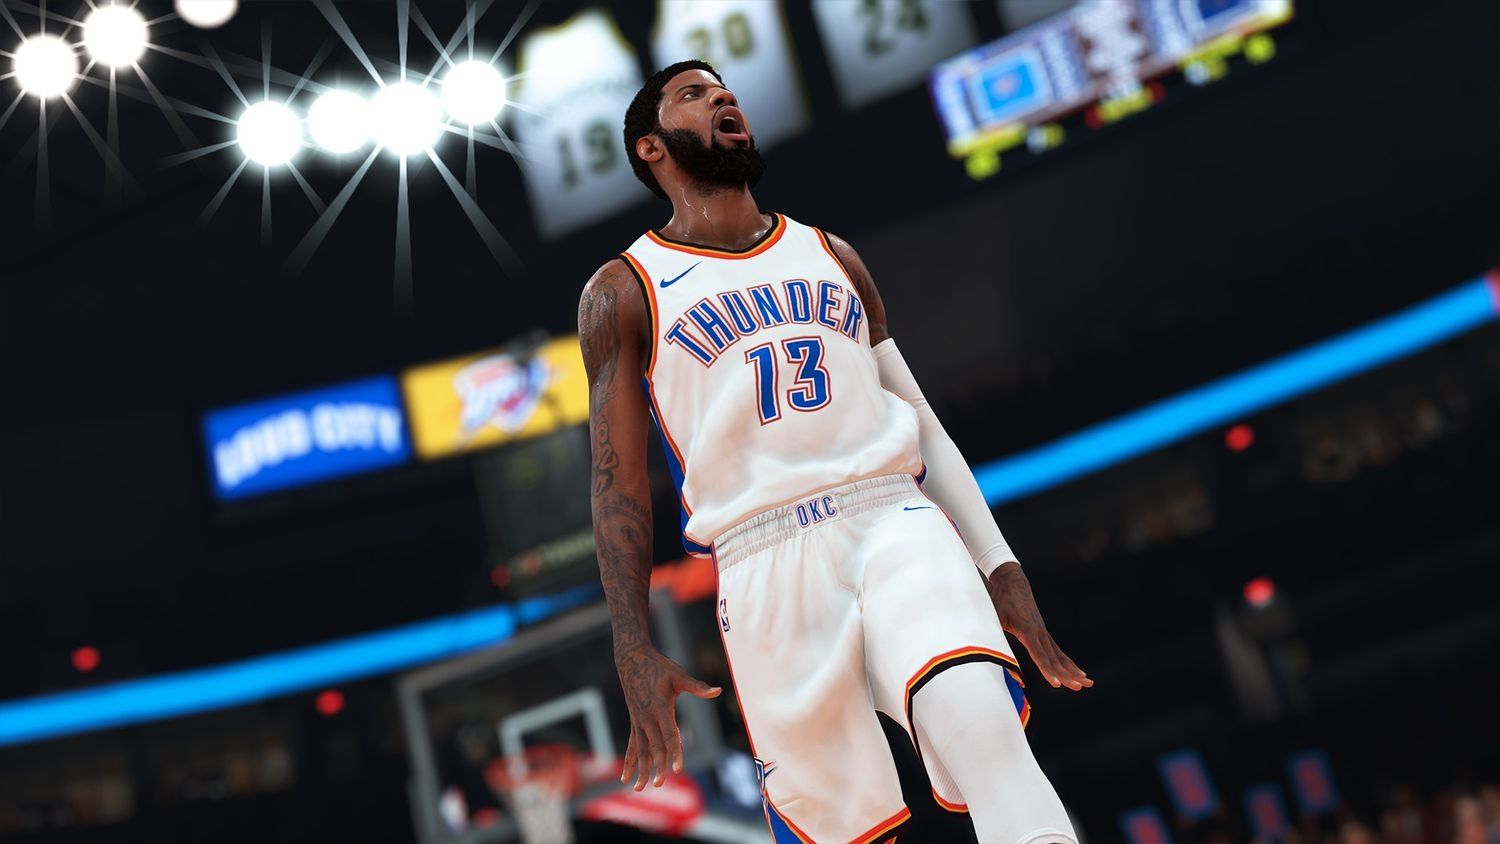 NBA 2K19 (Nintendo Switch) - 7